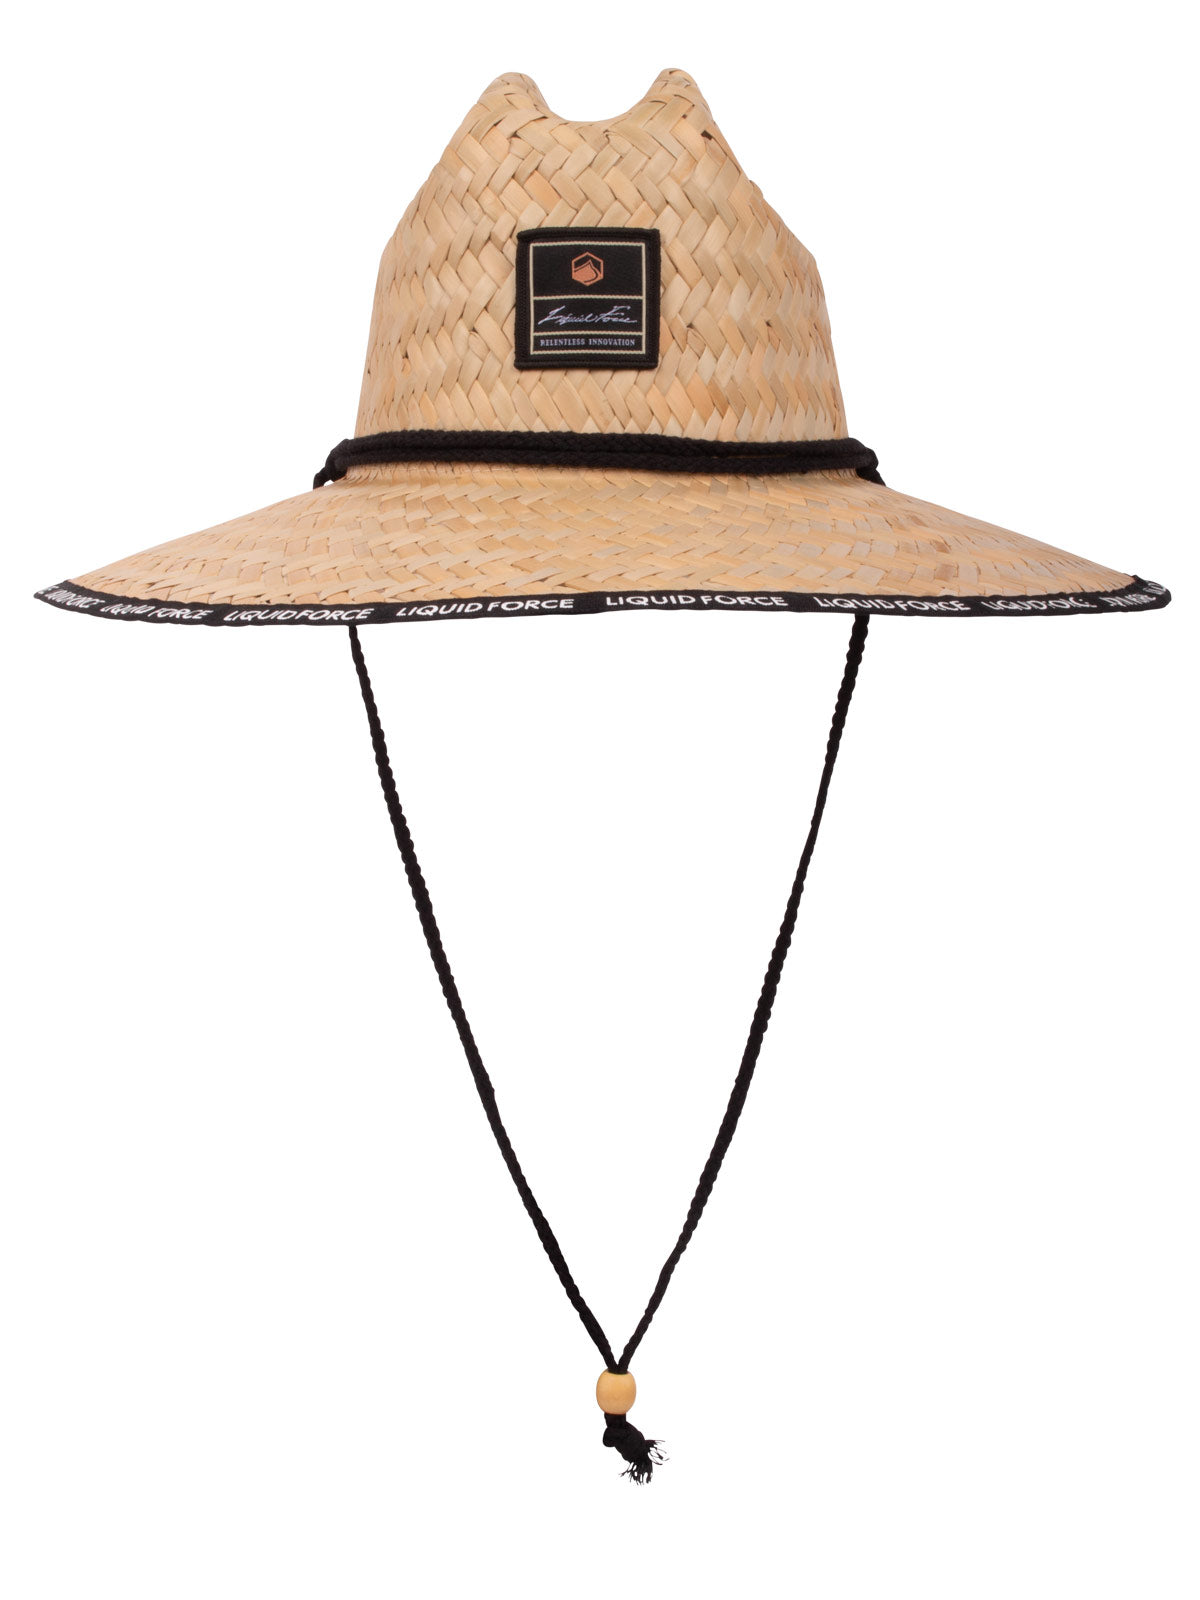 2021 Heritage Straw Lifeguard Hat